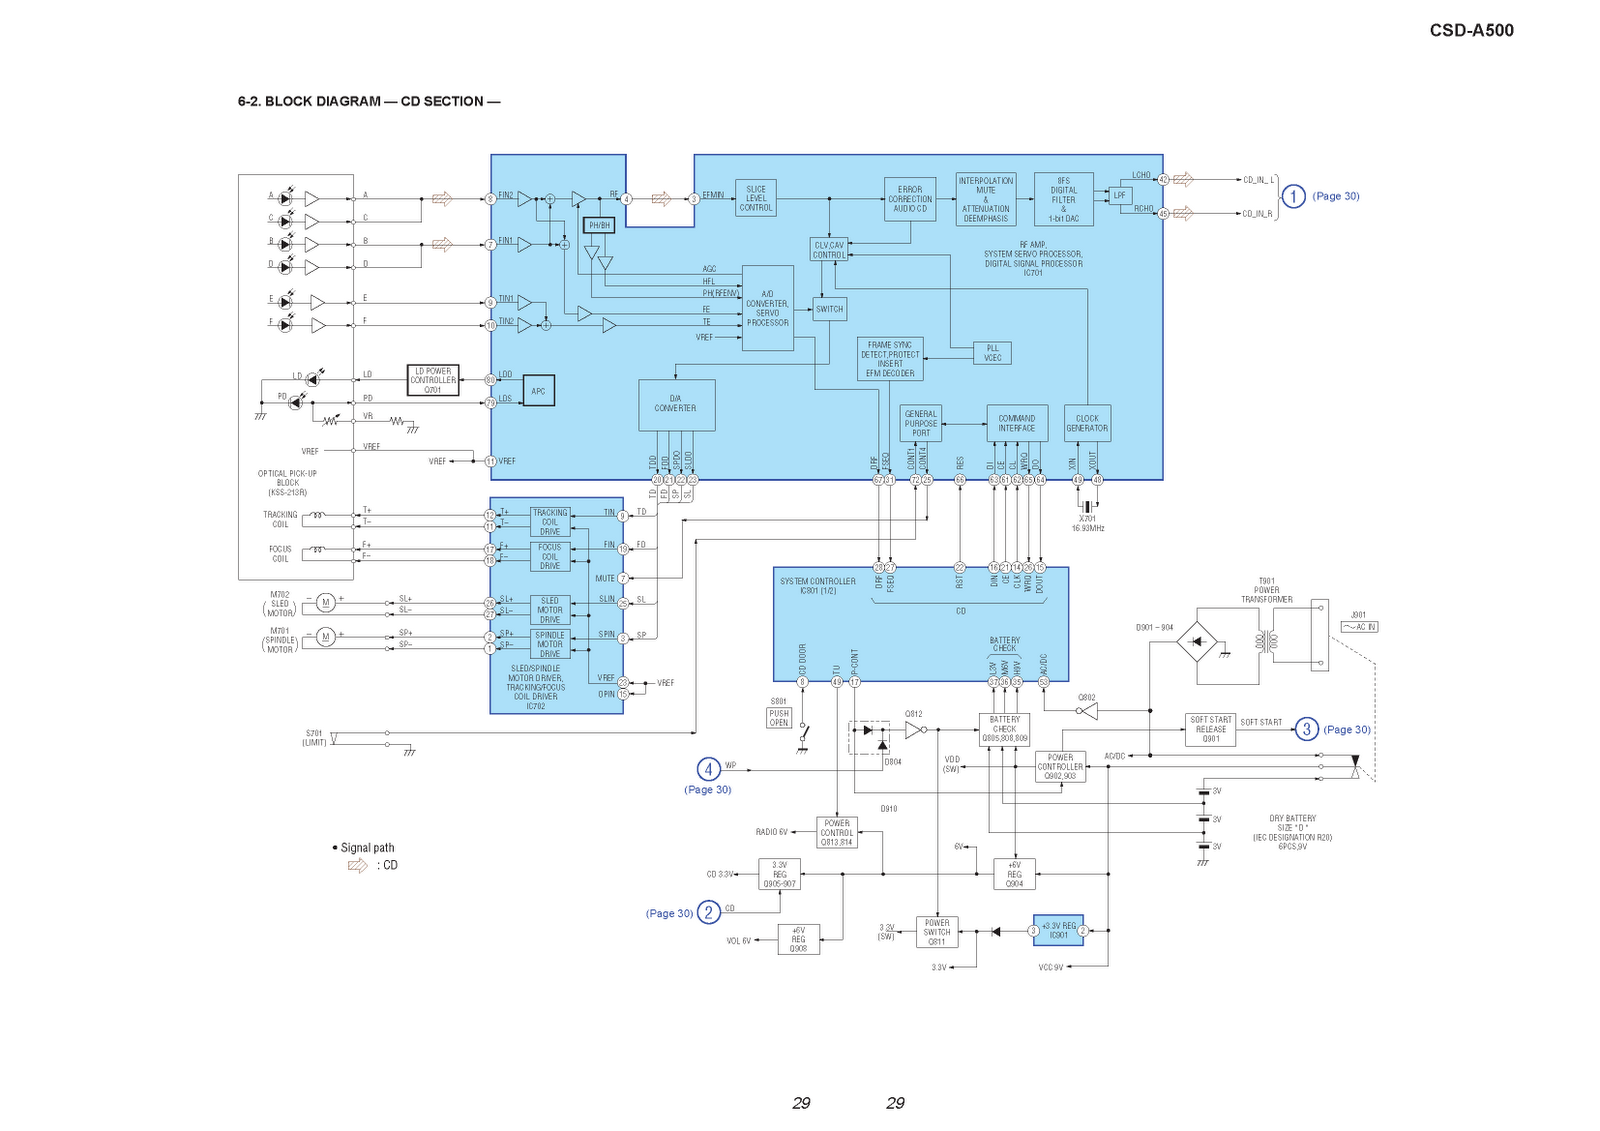 Schematic Electronics Aiwa Csd A500 Block Diagram Cd Stereo Radio Cassette Recorder Service Manual File Size 585mb Format Pdf Total Pages 70 Price 200